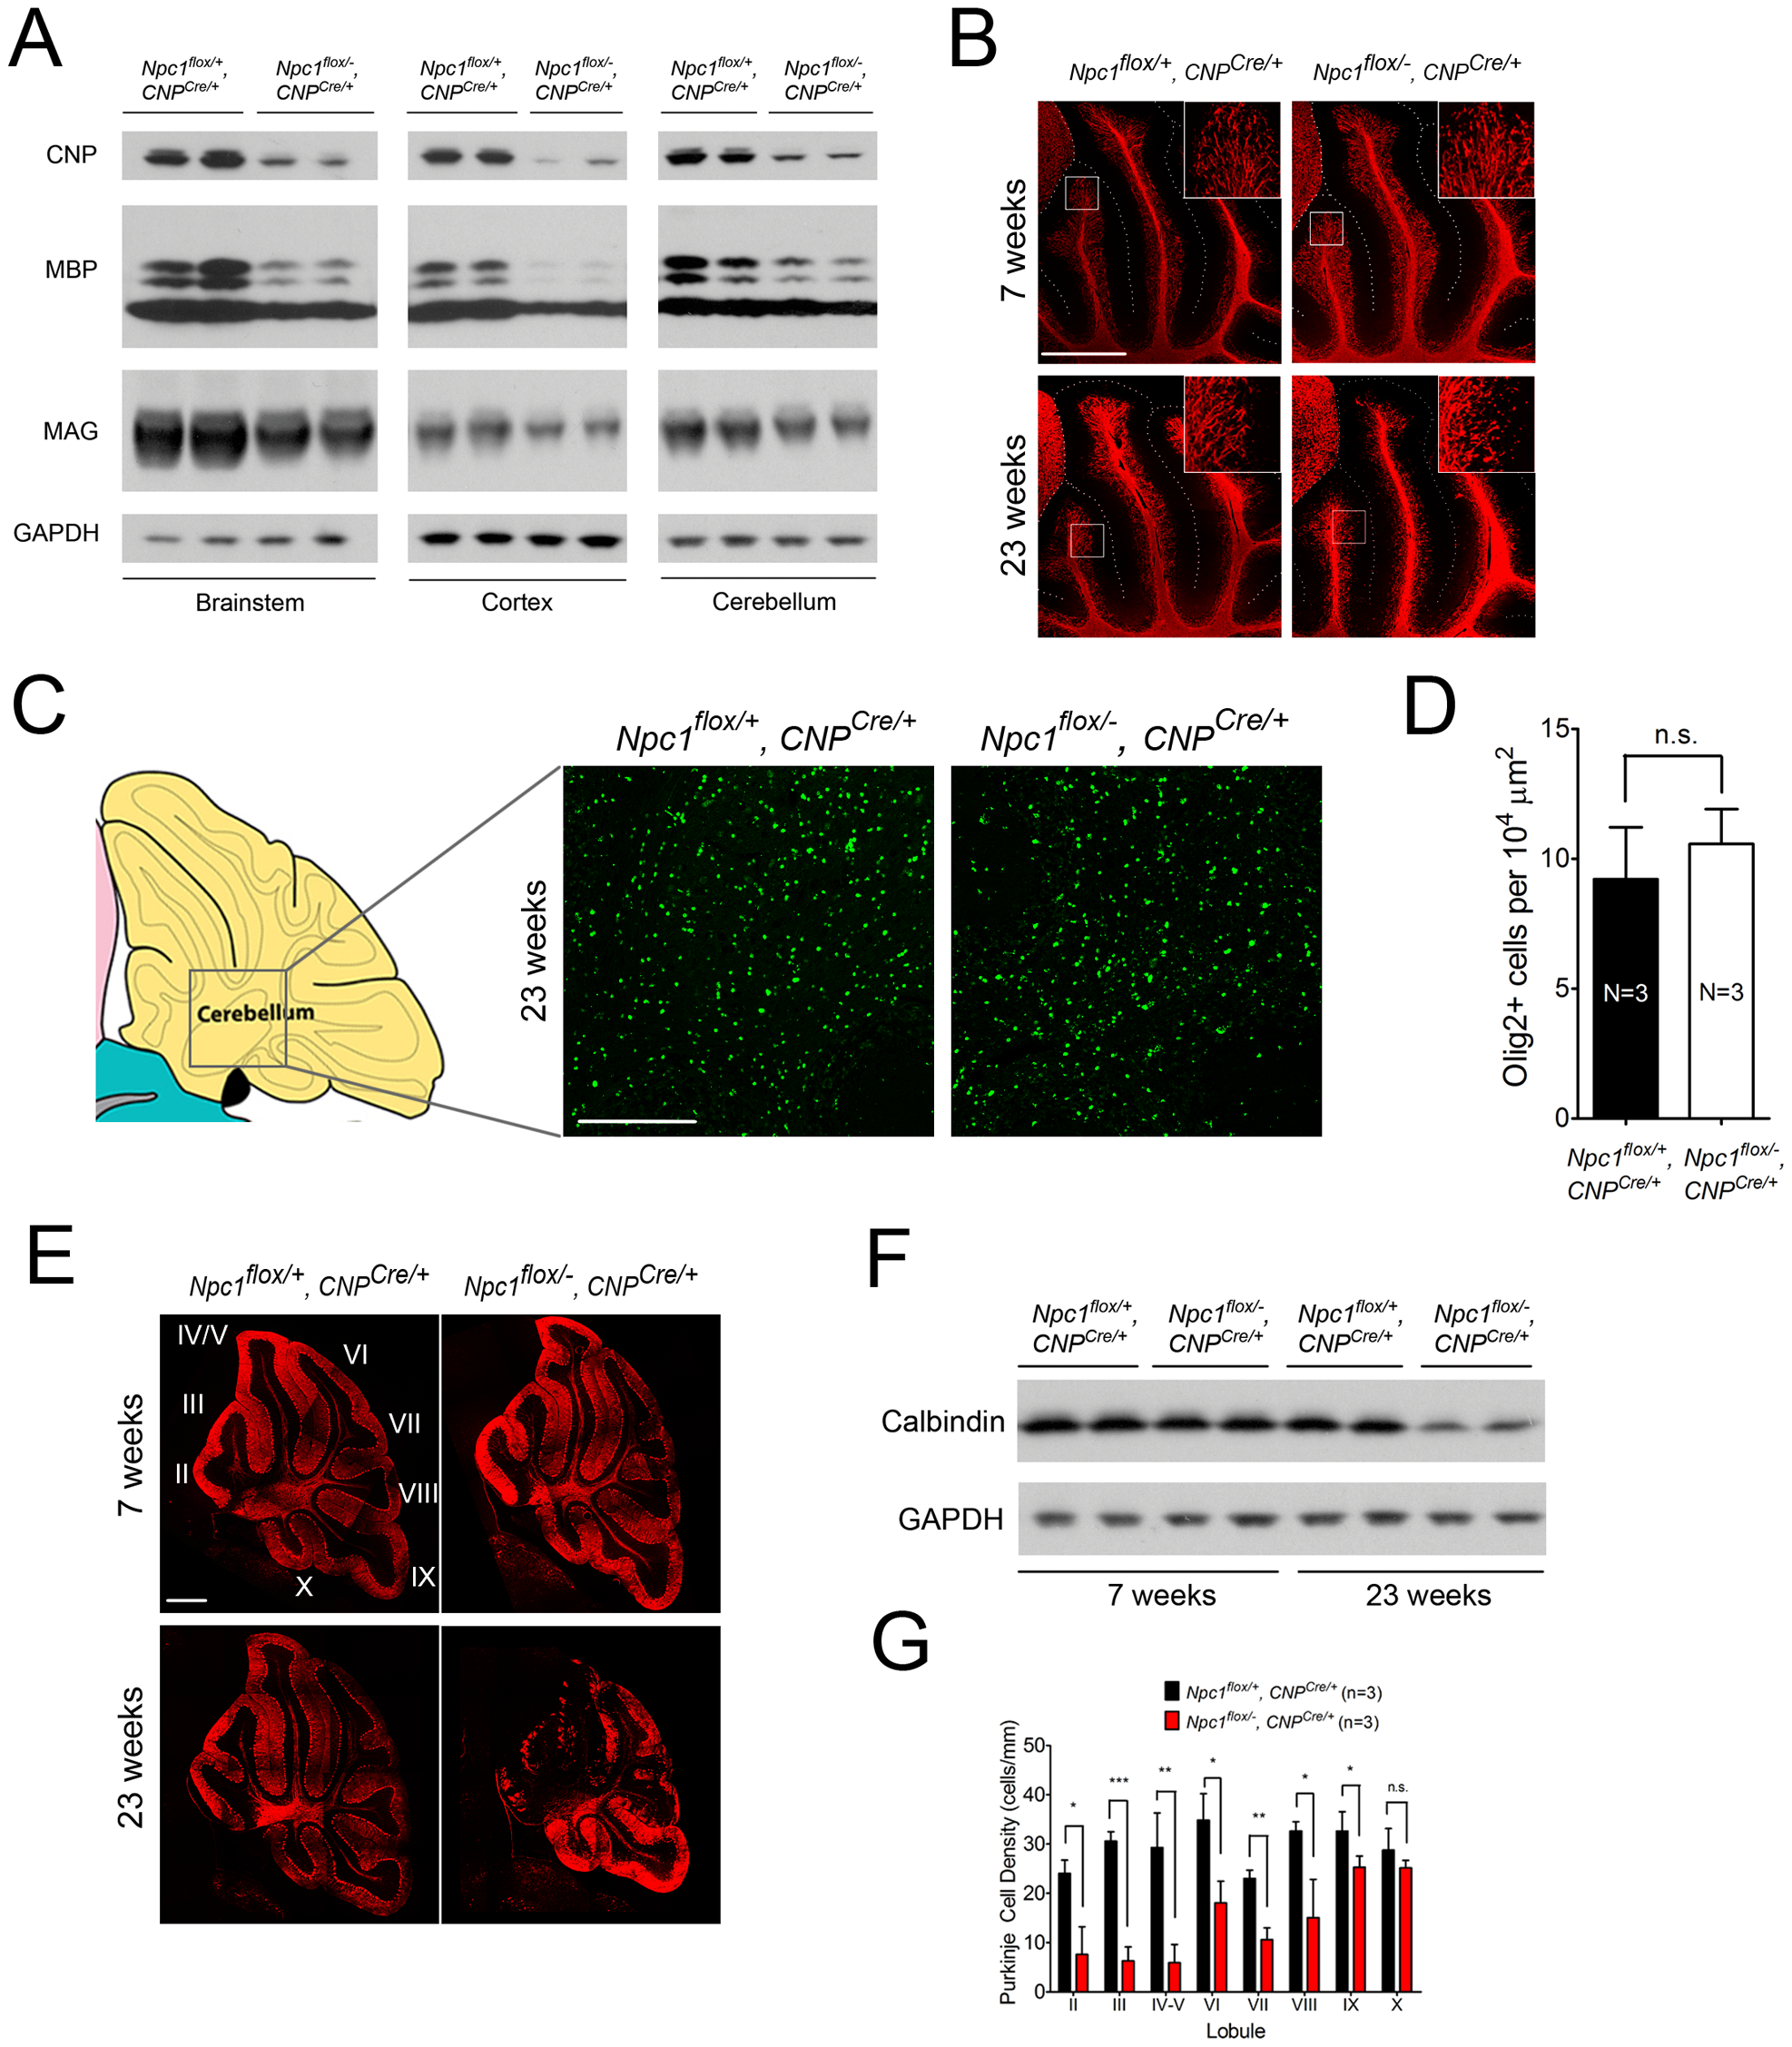 Loss of myelin proteins and Purkinje cell degeneration in aged oligodendrocyte-specific null mutants.